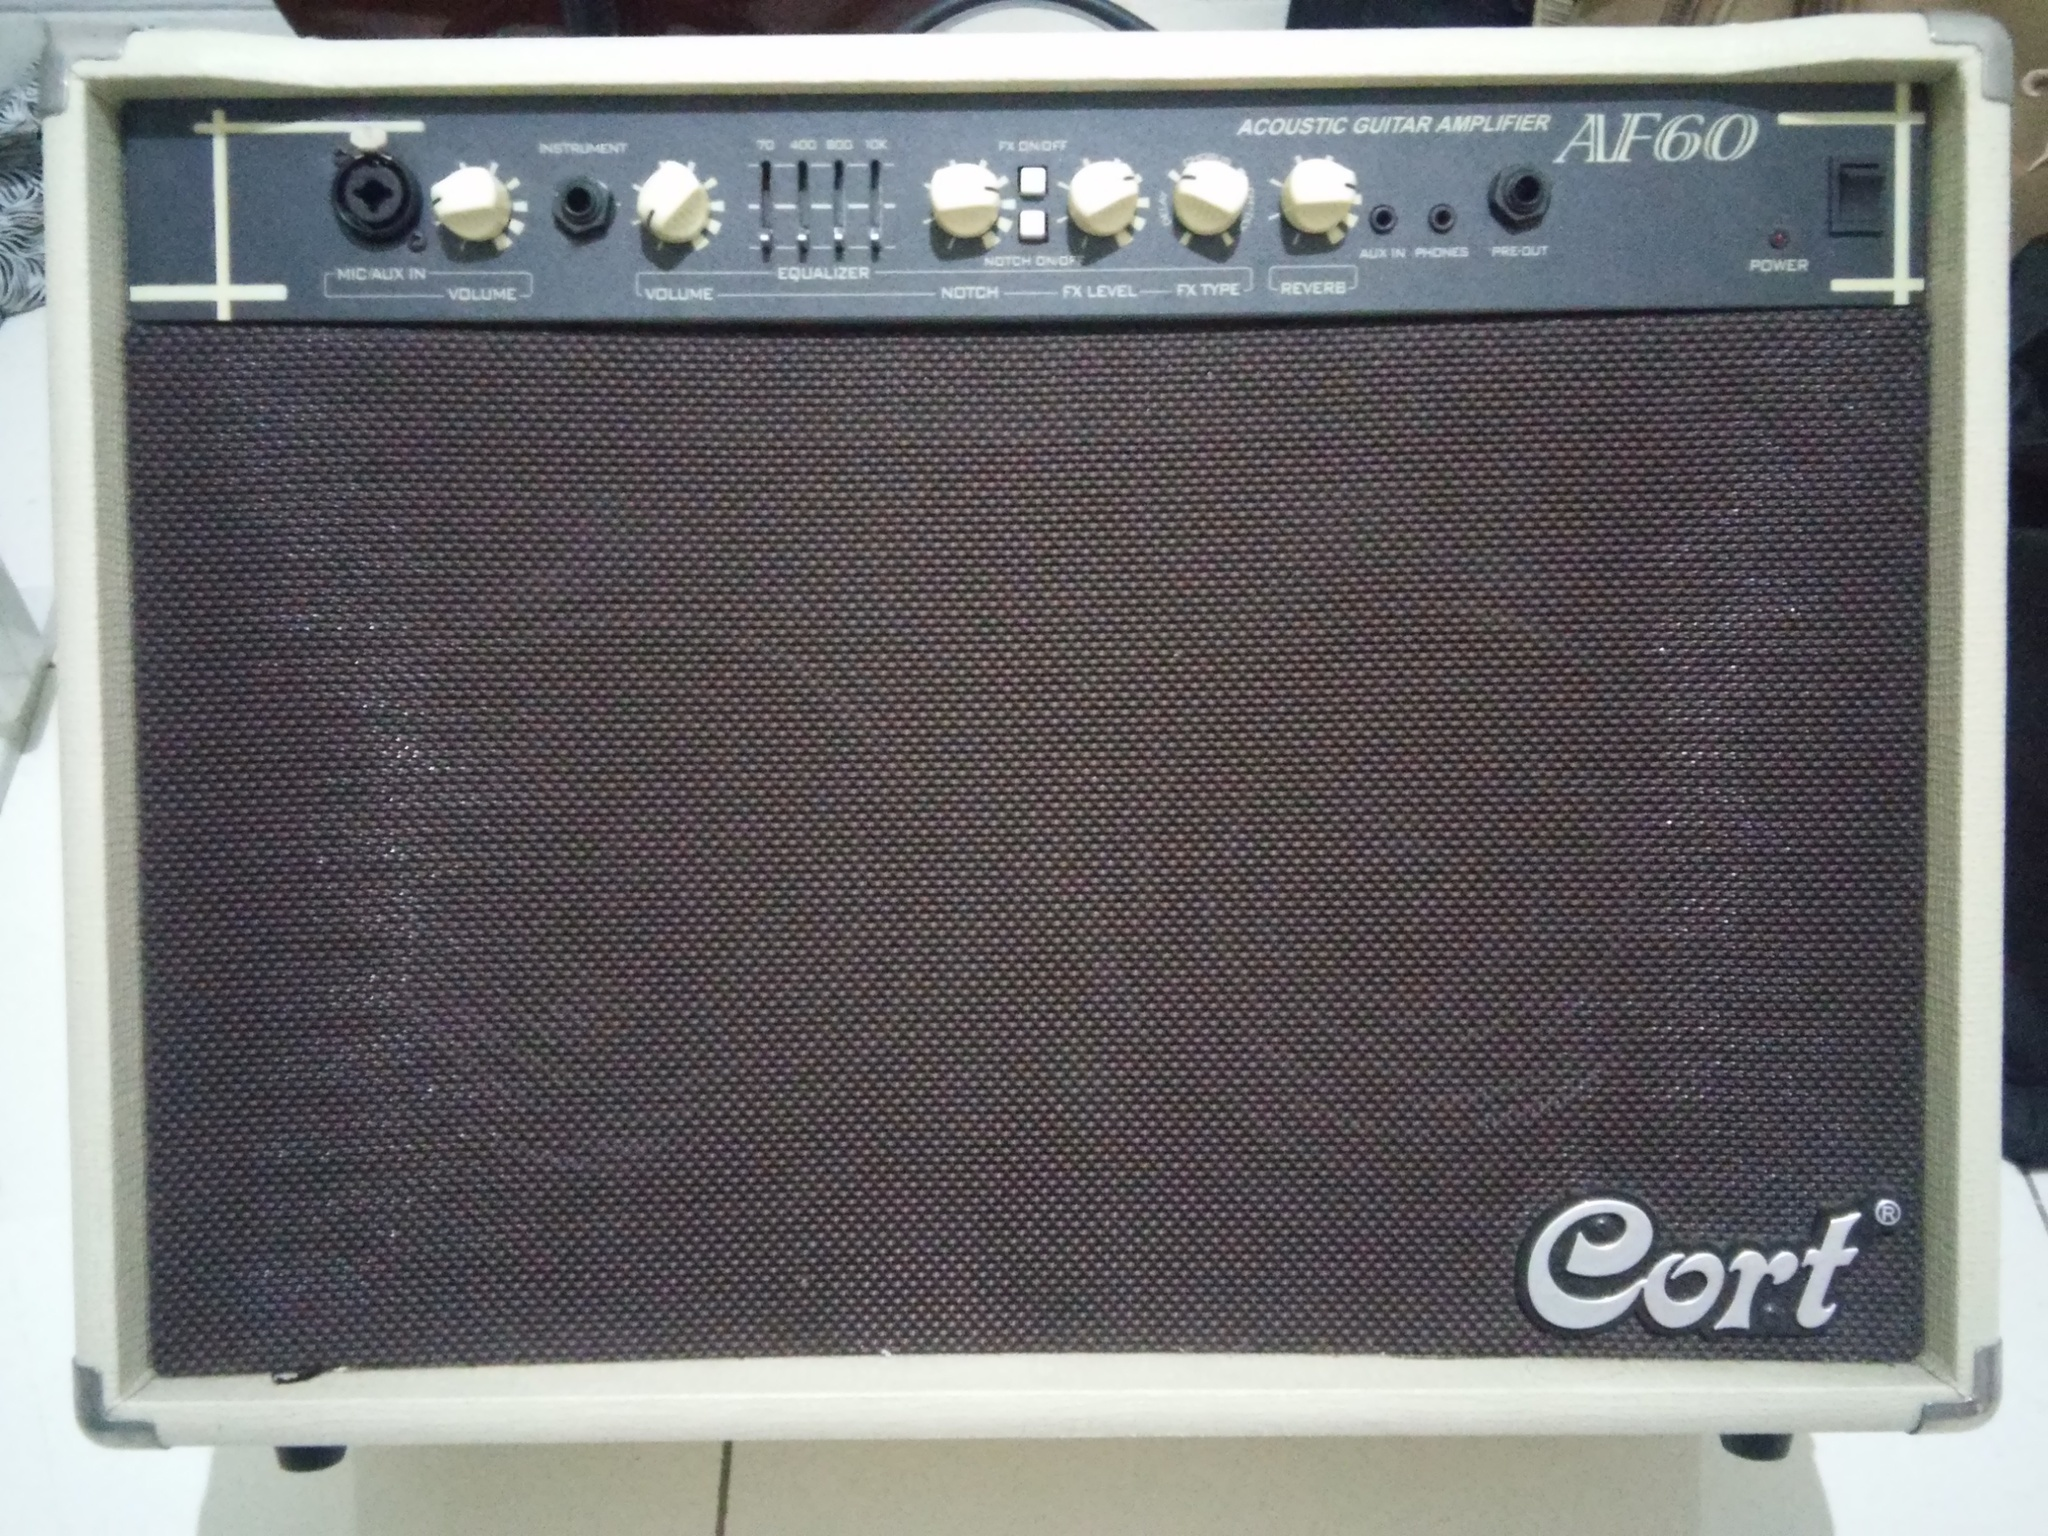 harga Cort AF60 Acoustic Guitar Amplifier Tokopedia.com